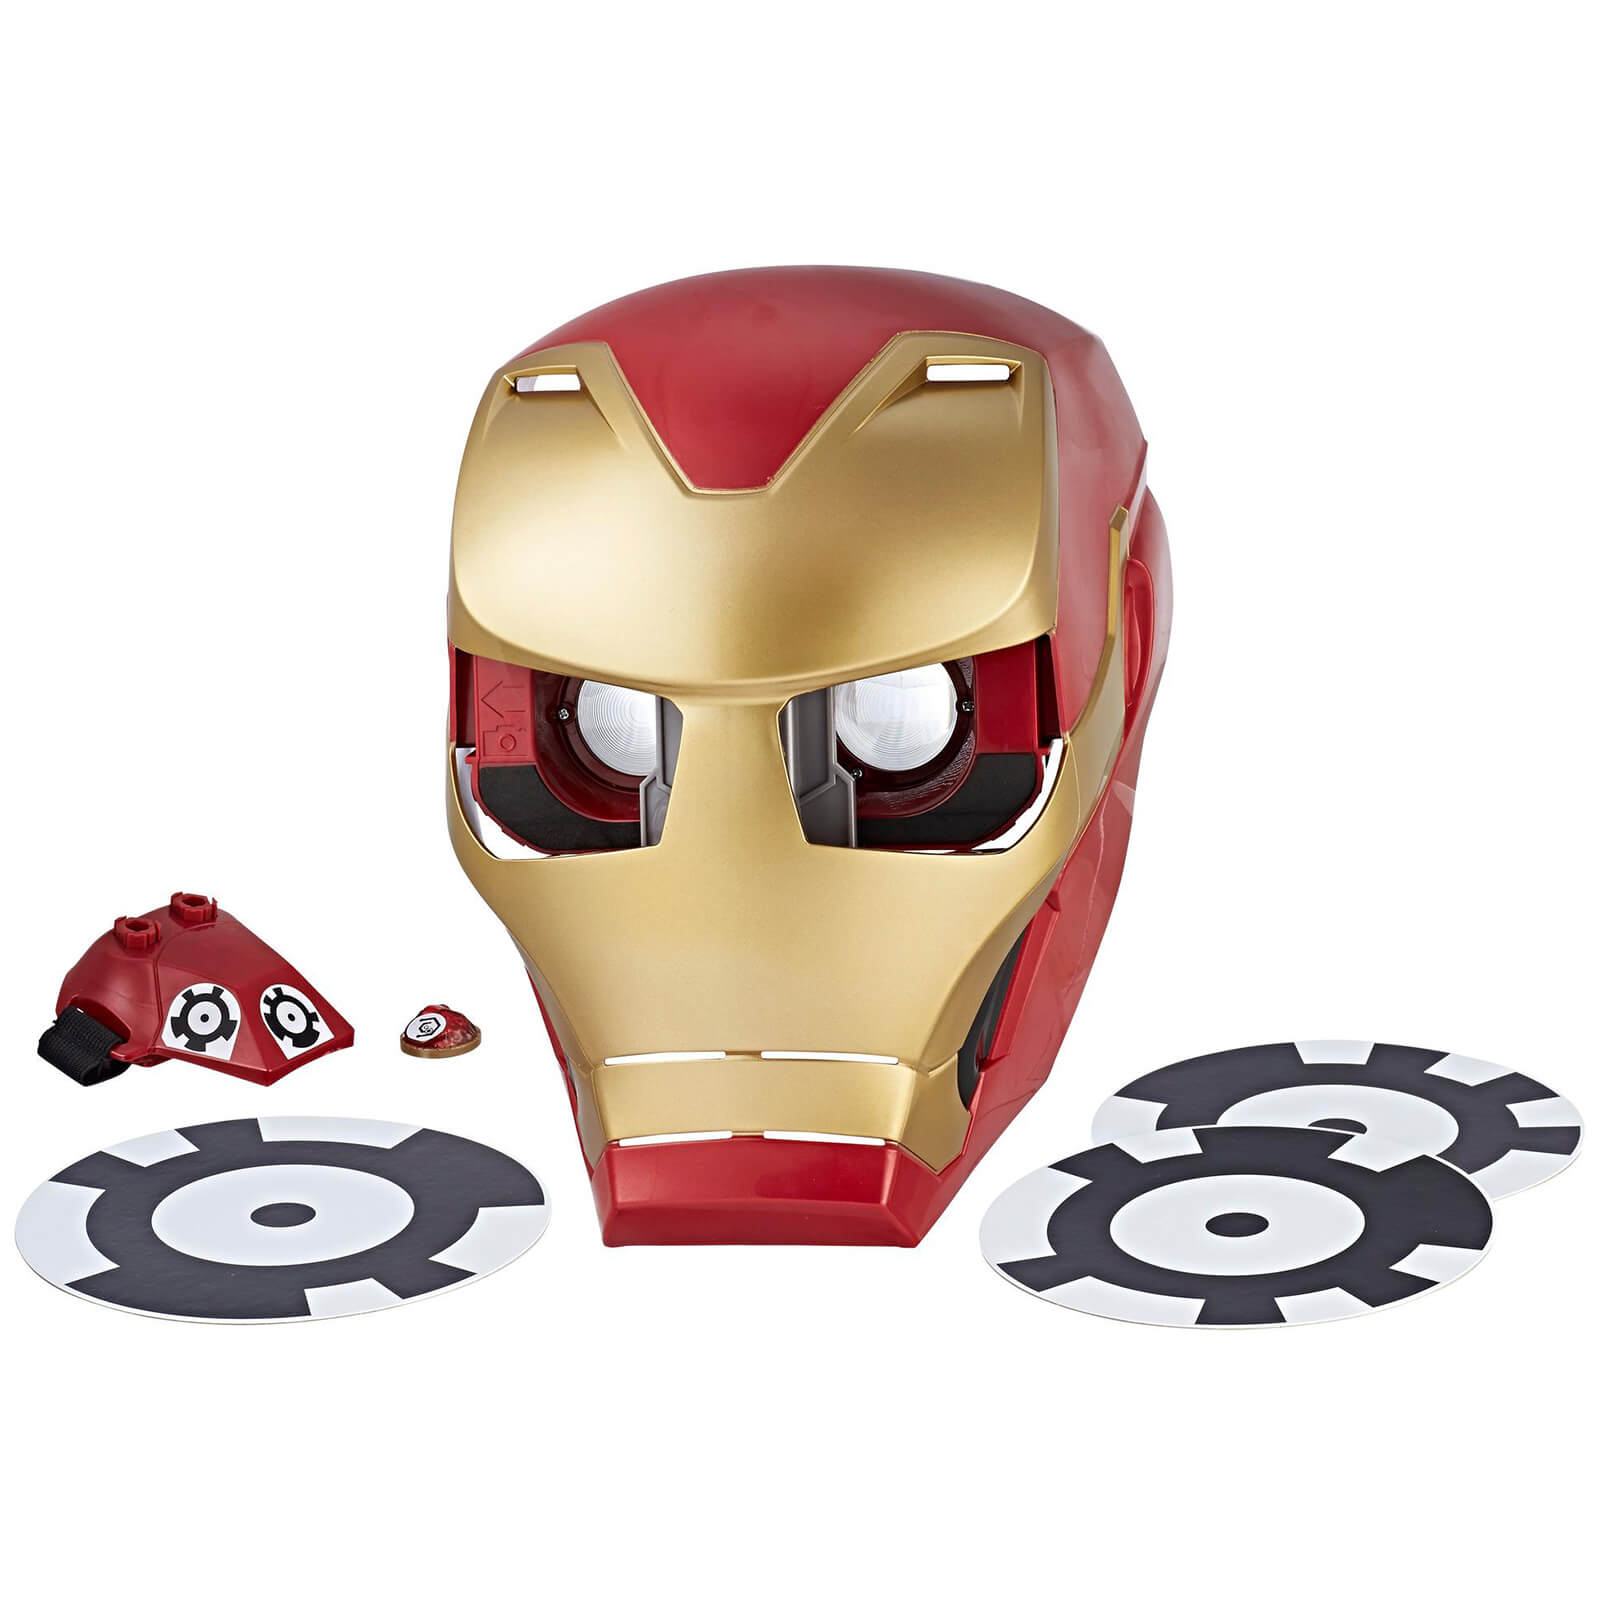 Marvel Avengers Infinity War Hero Vision AR Iron Man Mask